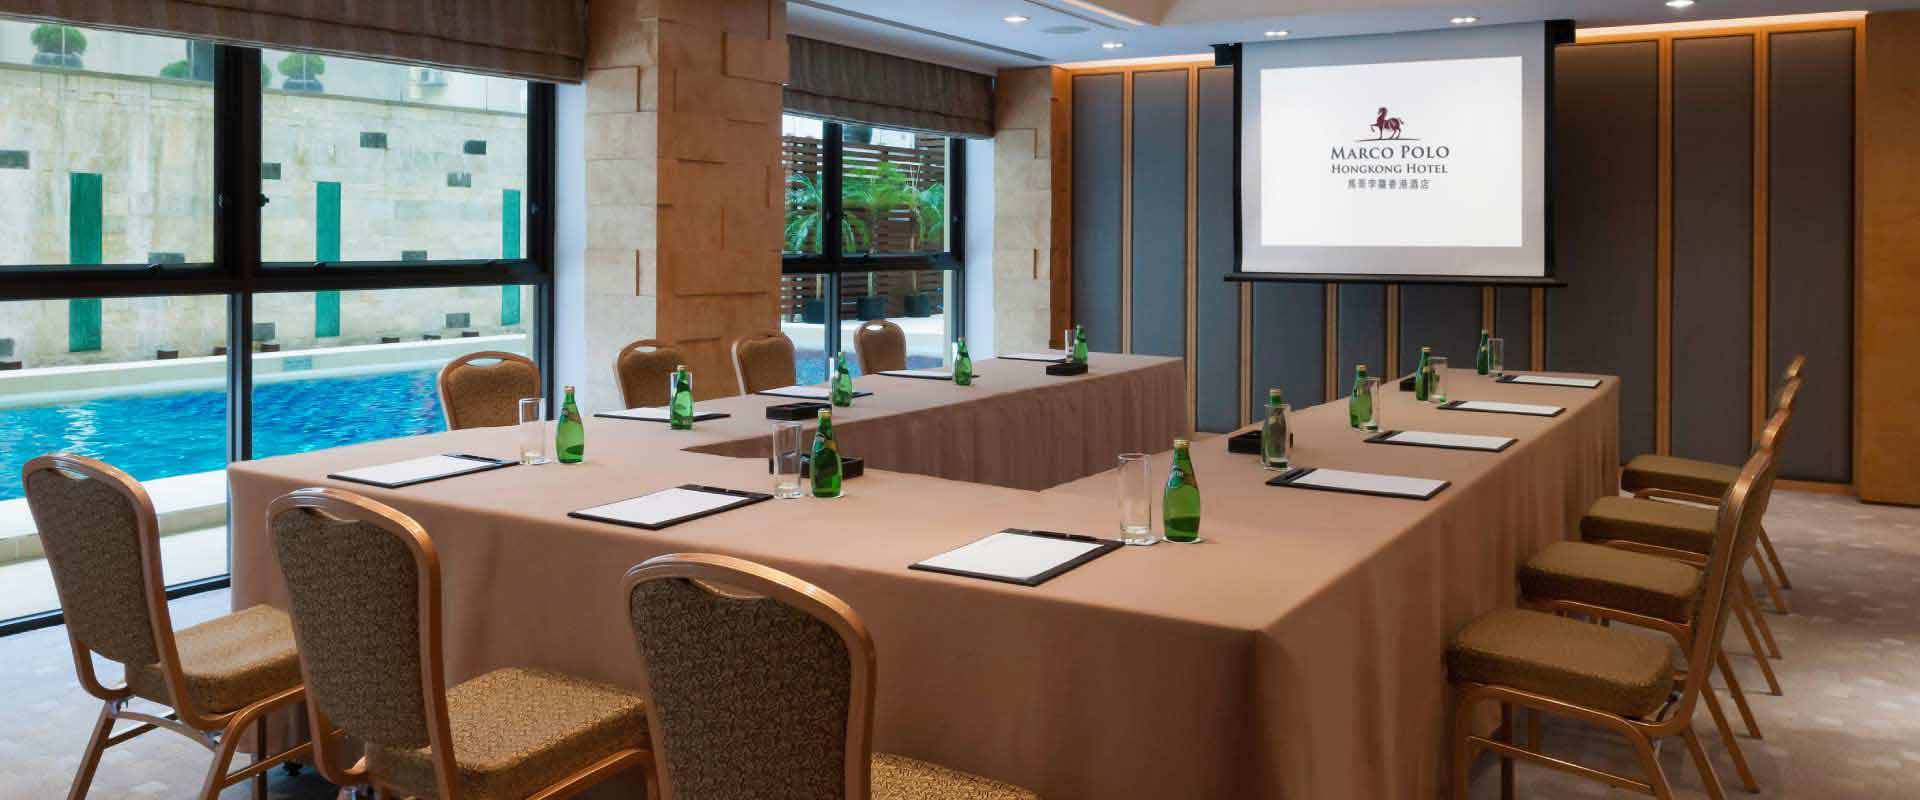 Perfect venue for meetings or events